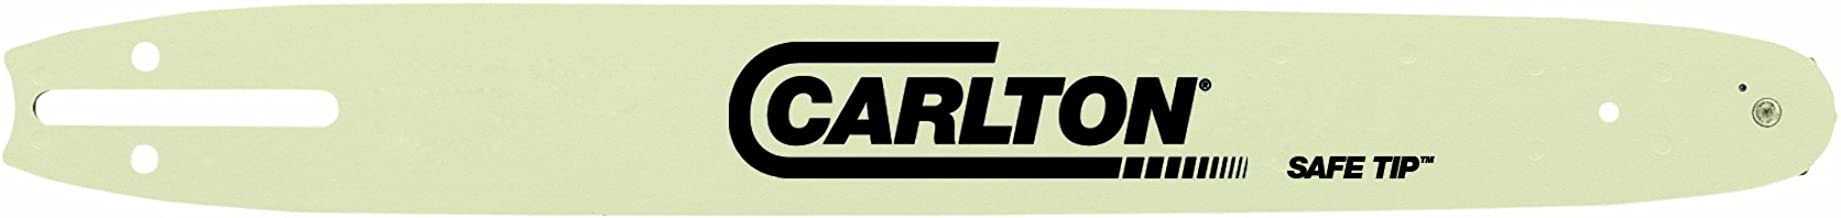 Carlton 12-10-N145-RK Safe Tip Chainsaw Cutting Bar, 12-Inch